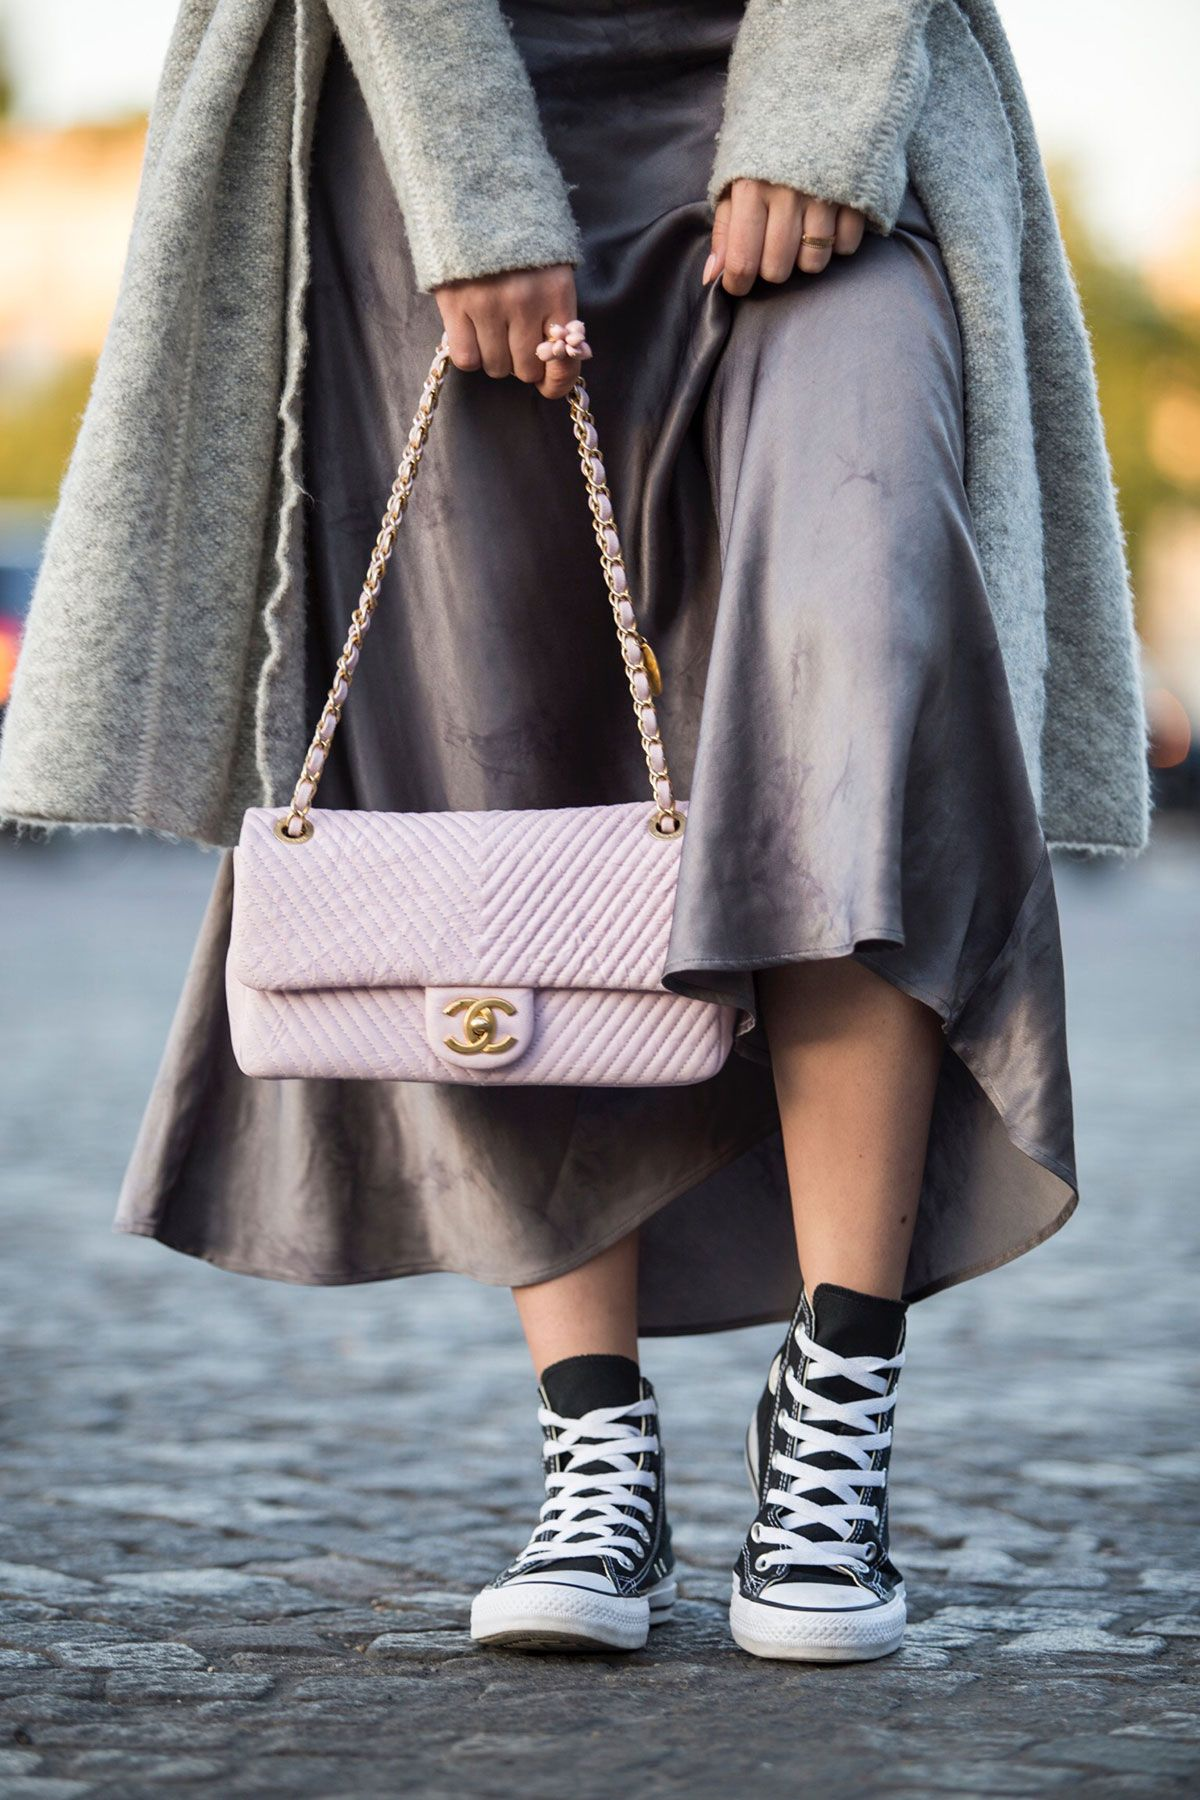 a94925a41982 Pink Chanel Chevron Leather bag and all-star Converse sneakers by Stella  Asteria